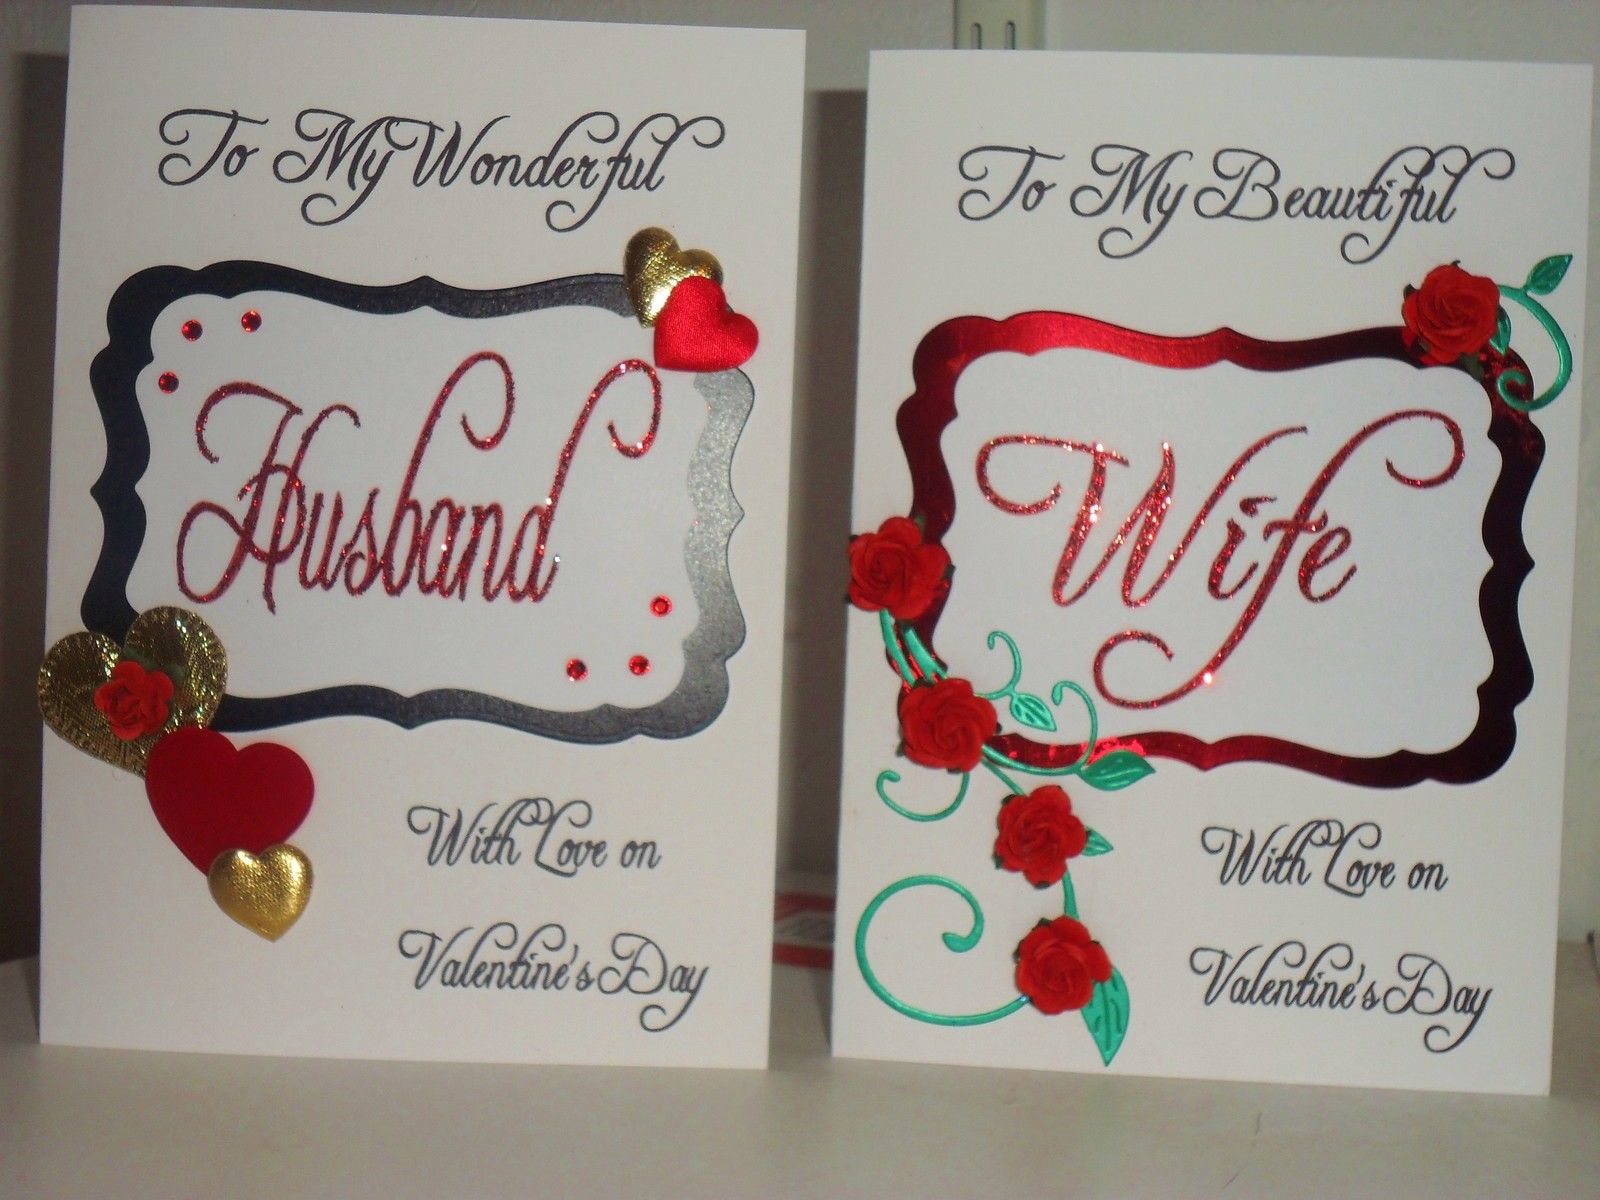 Quotes for homemade cards quotesgram for Creative valentines day ideas for wife